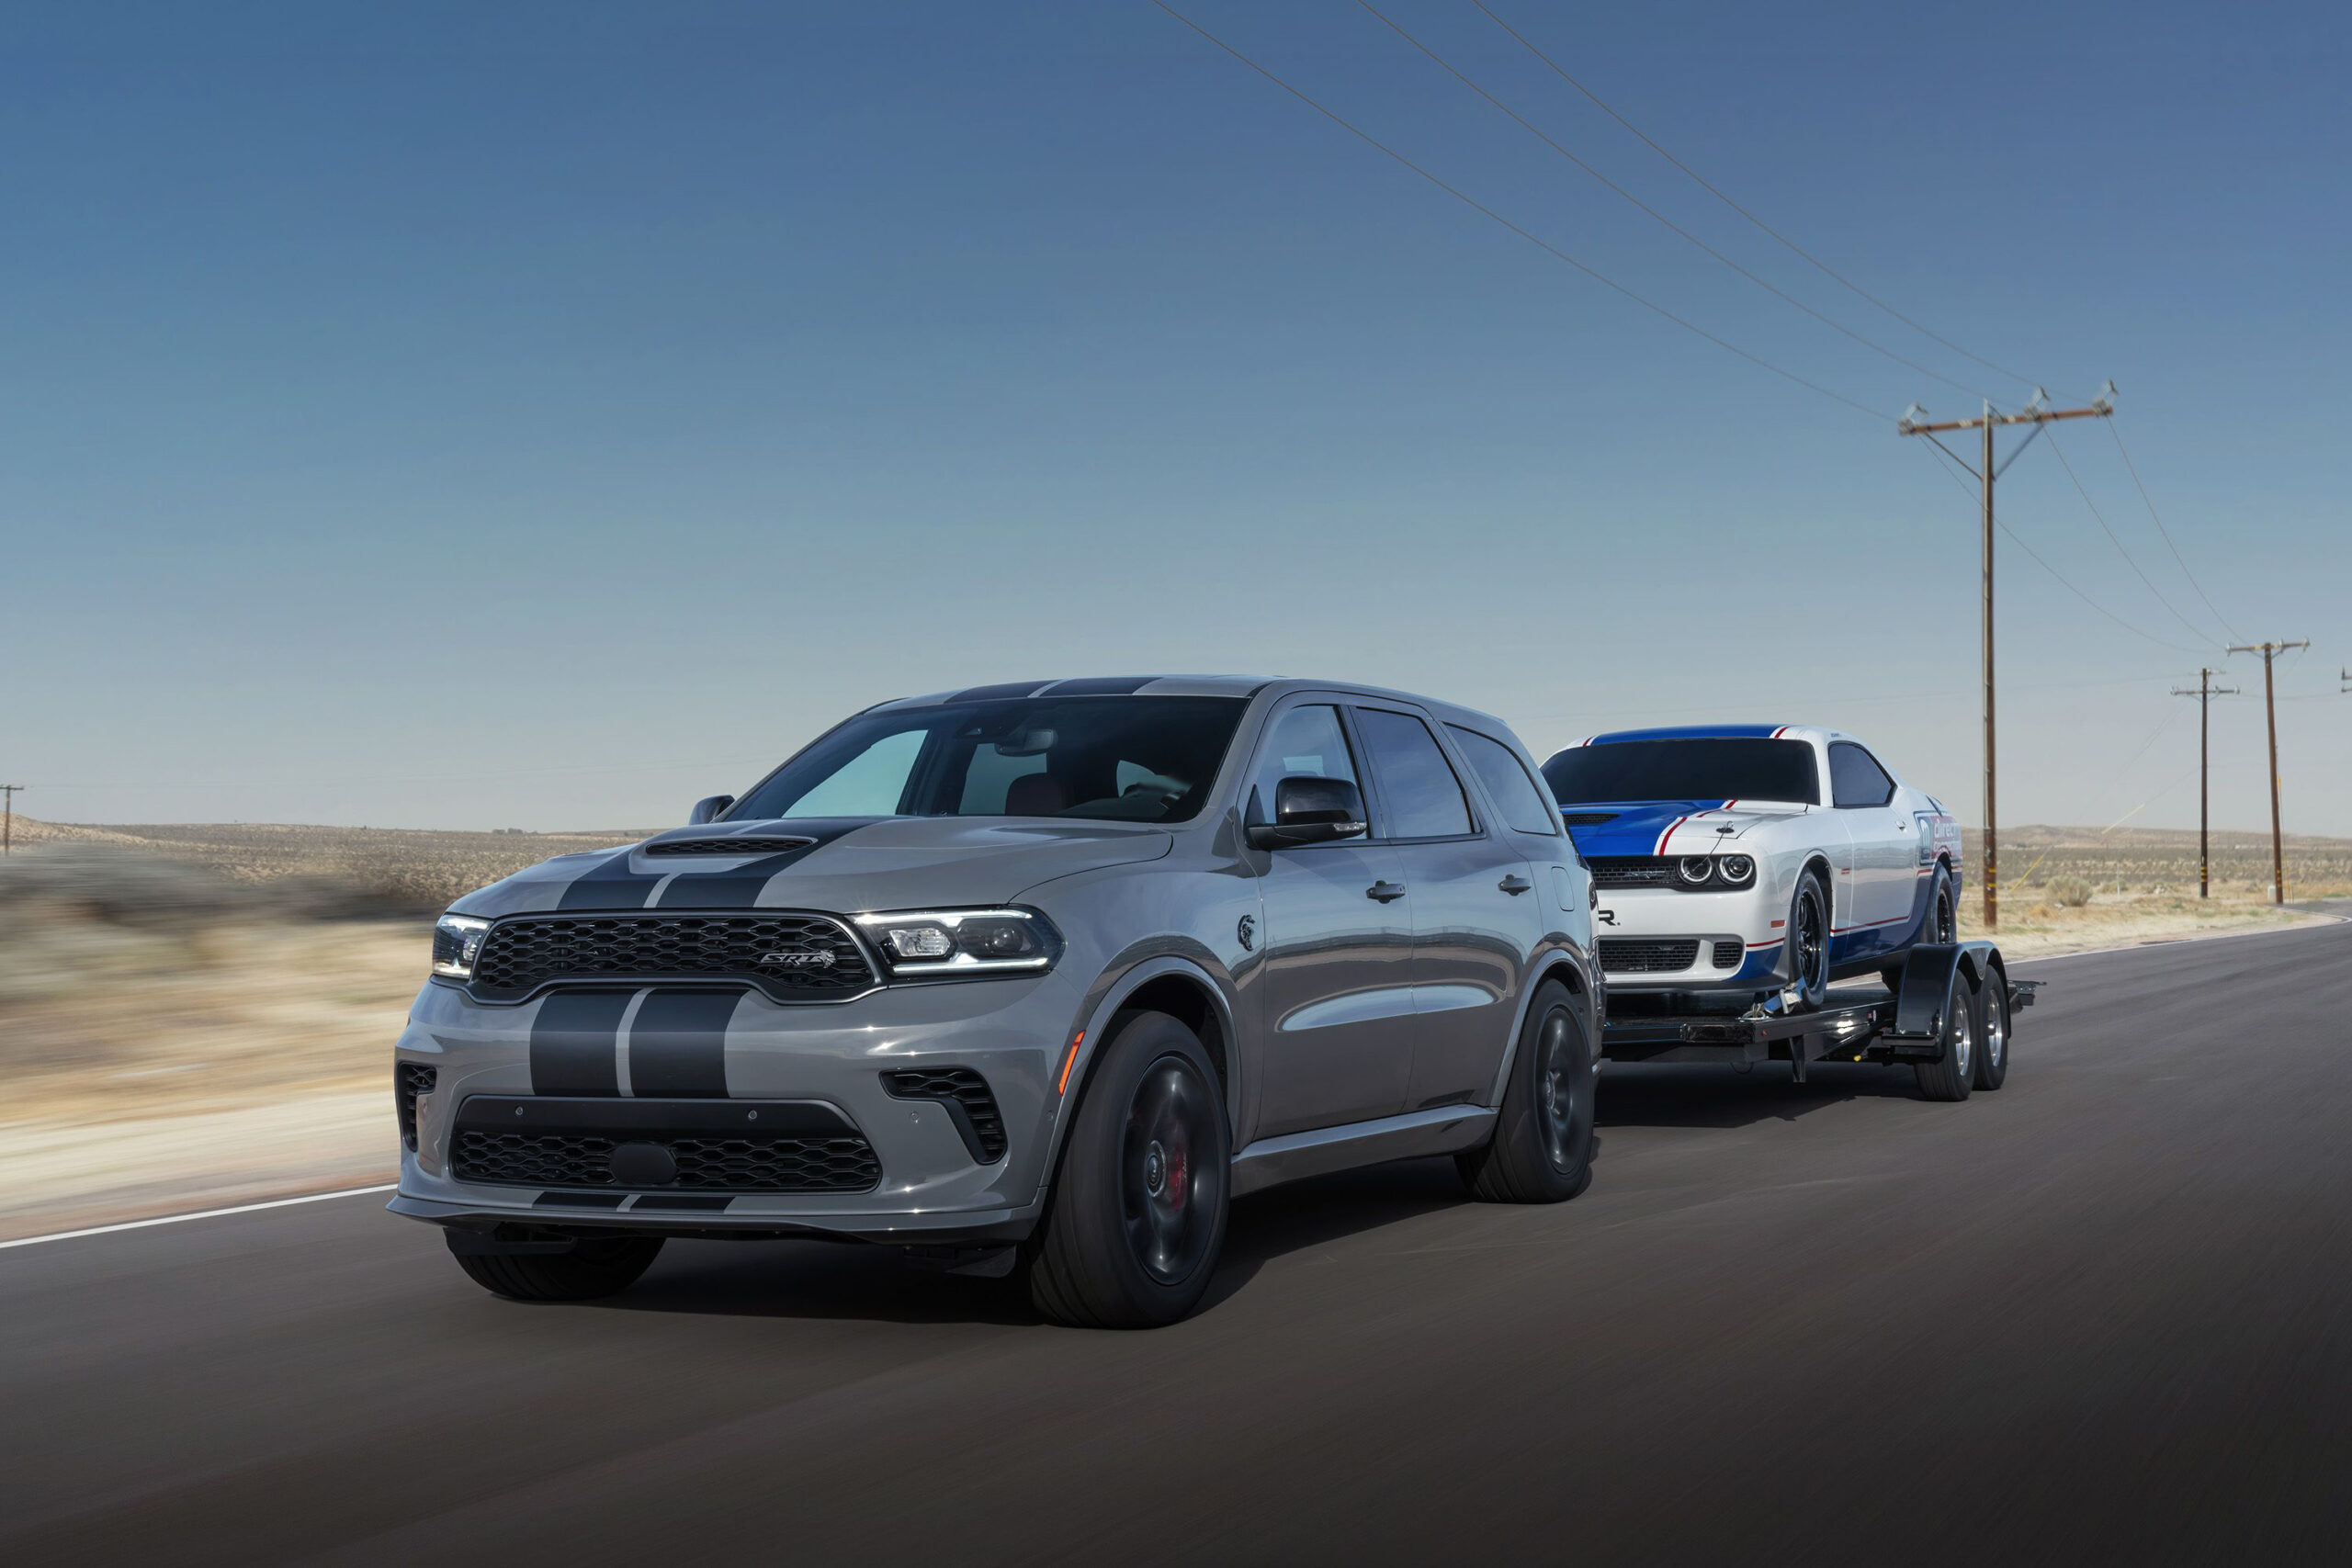 2022 Dodge Durango Srt Hellcat Sound Review Exhaust